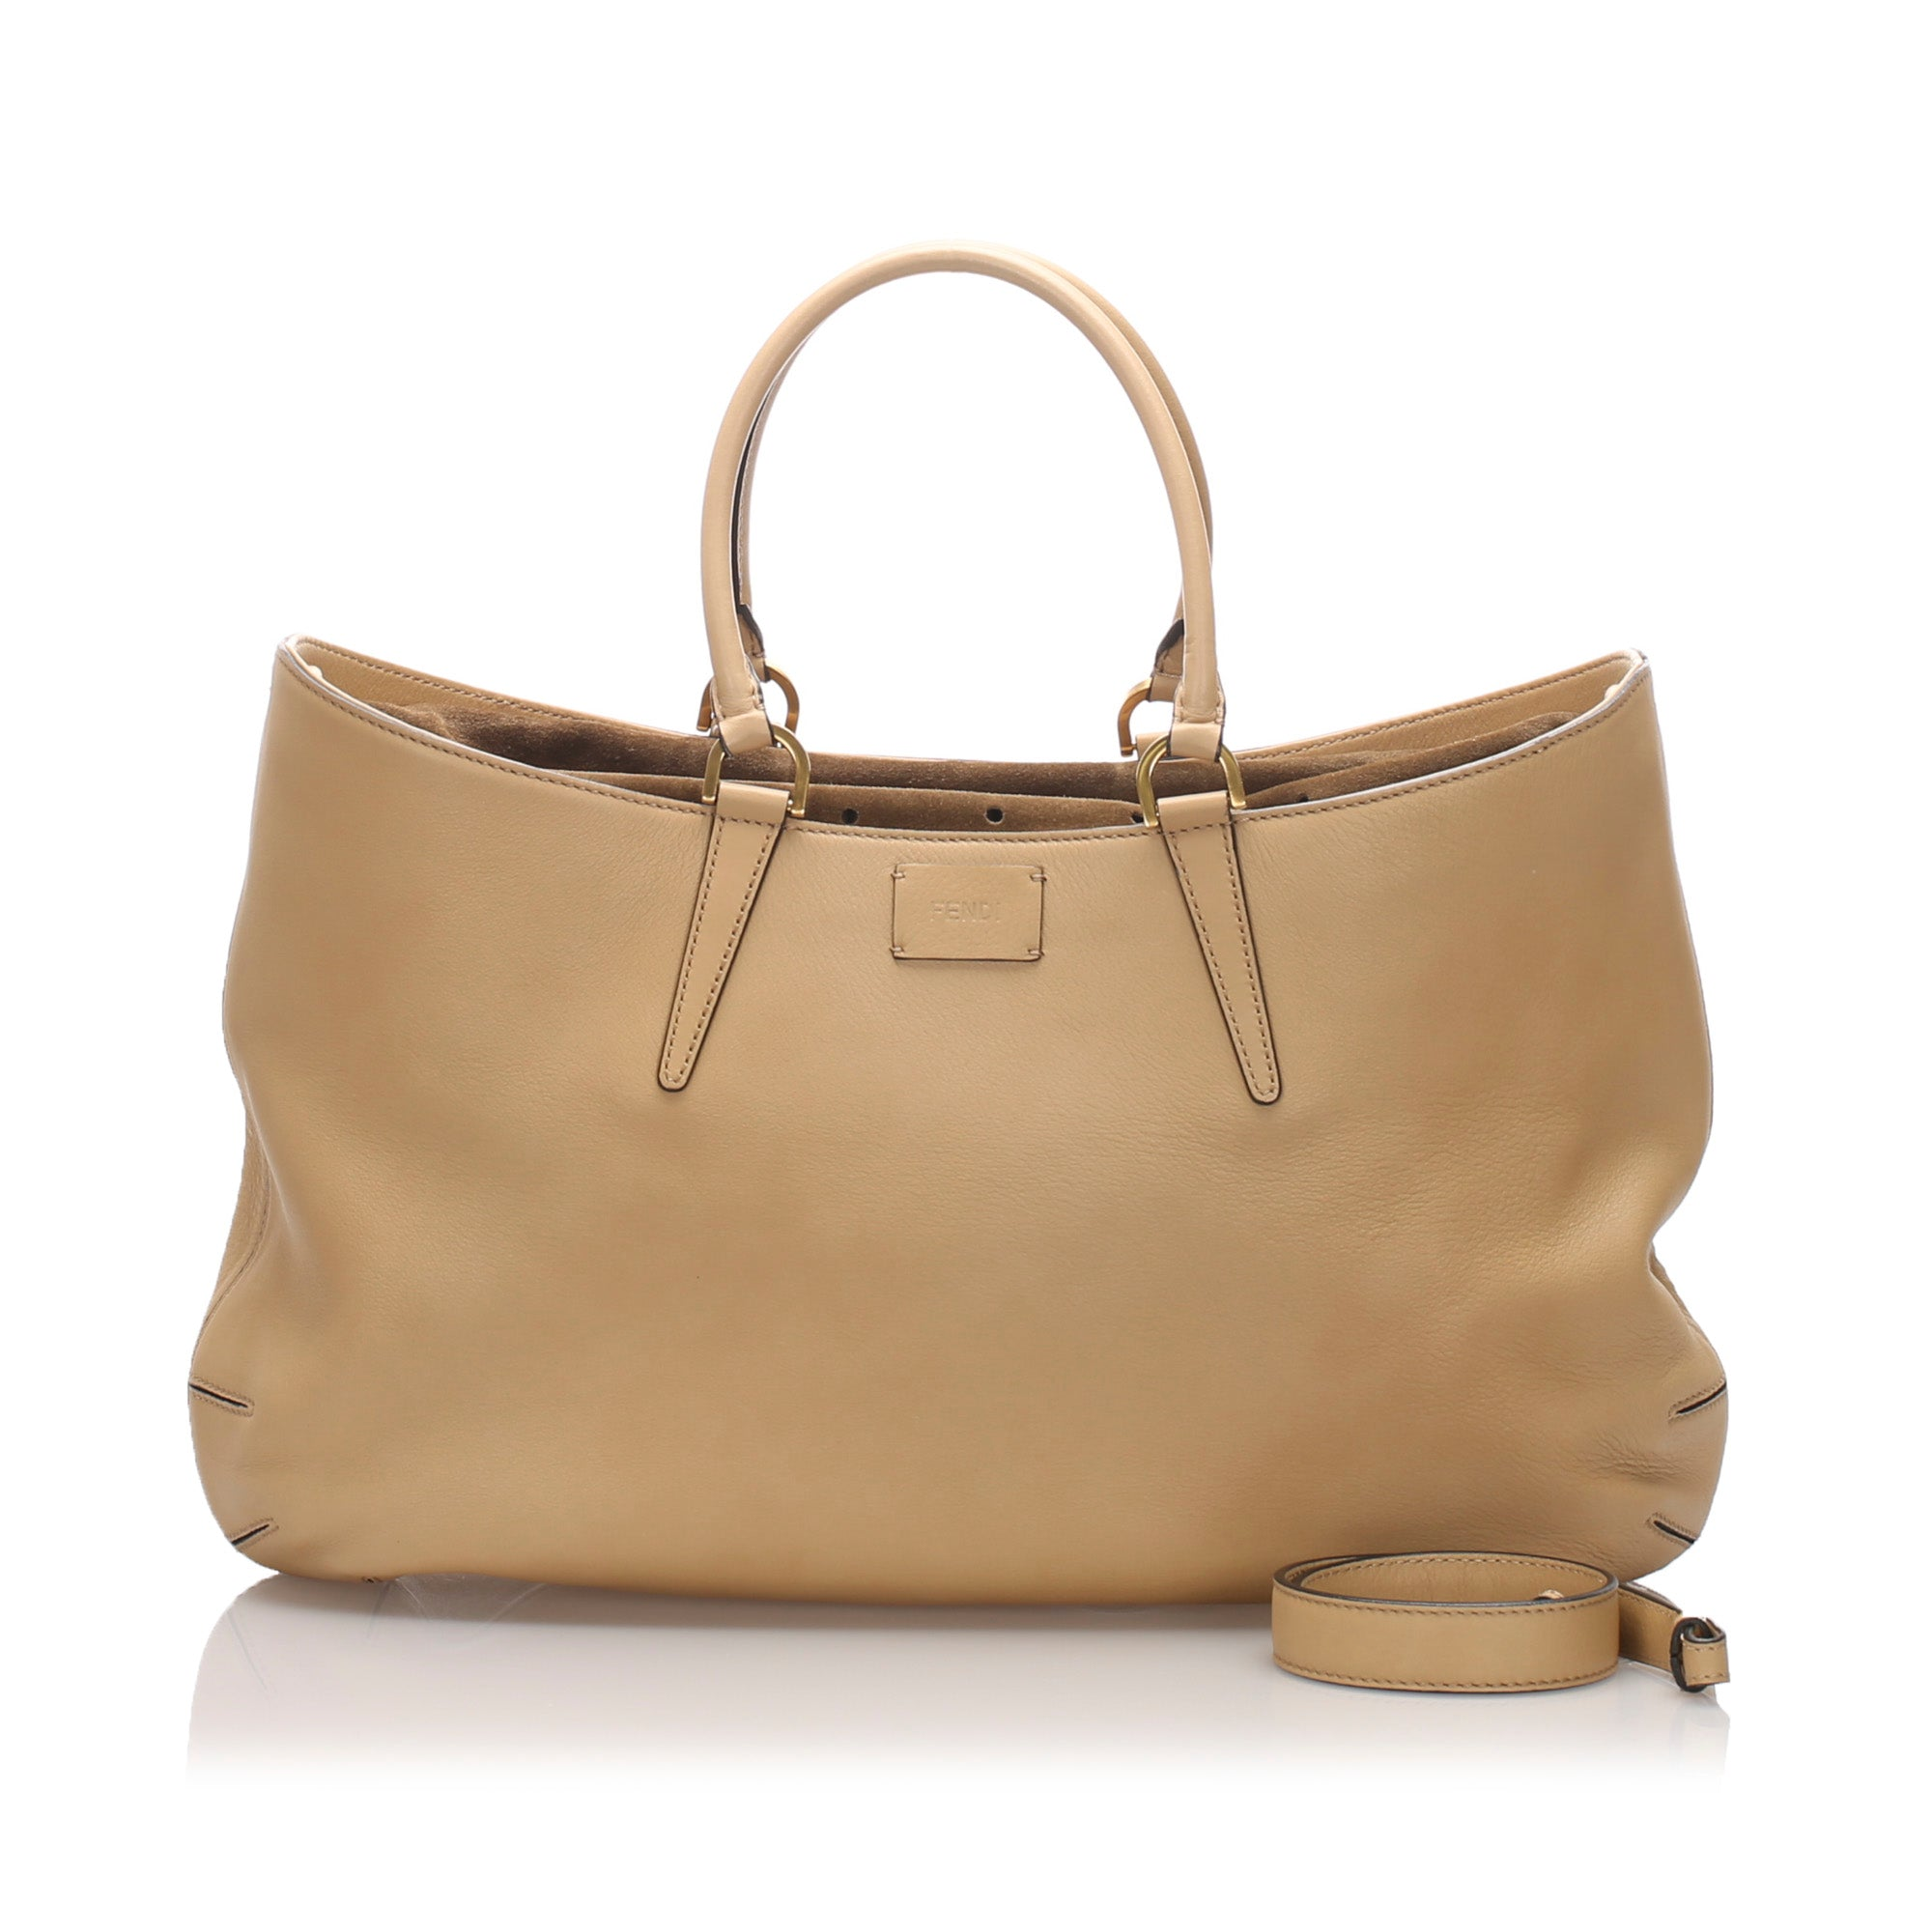 Fendi Brown Leather Tote Bag